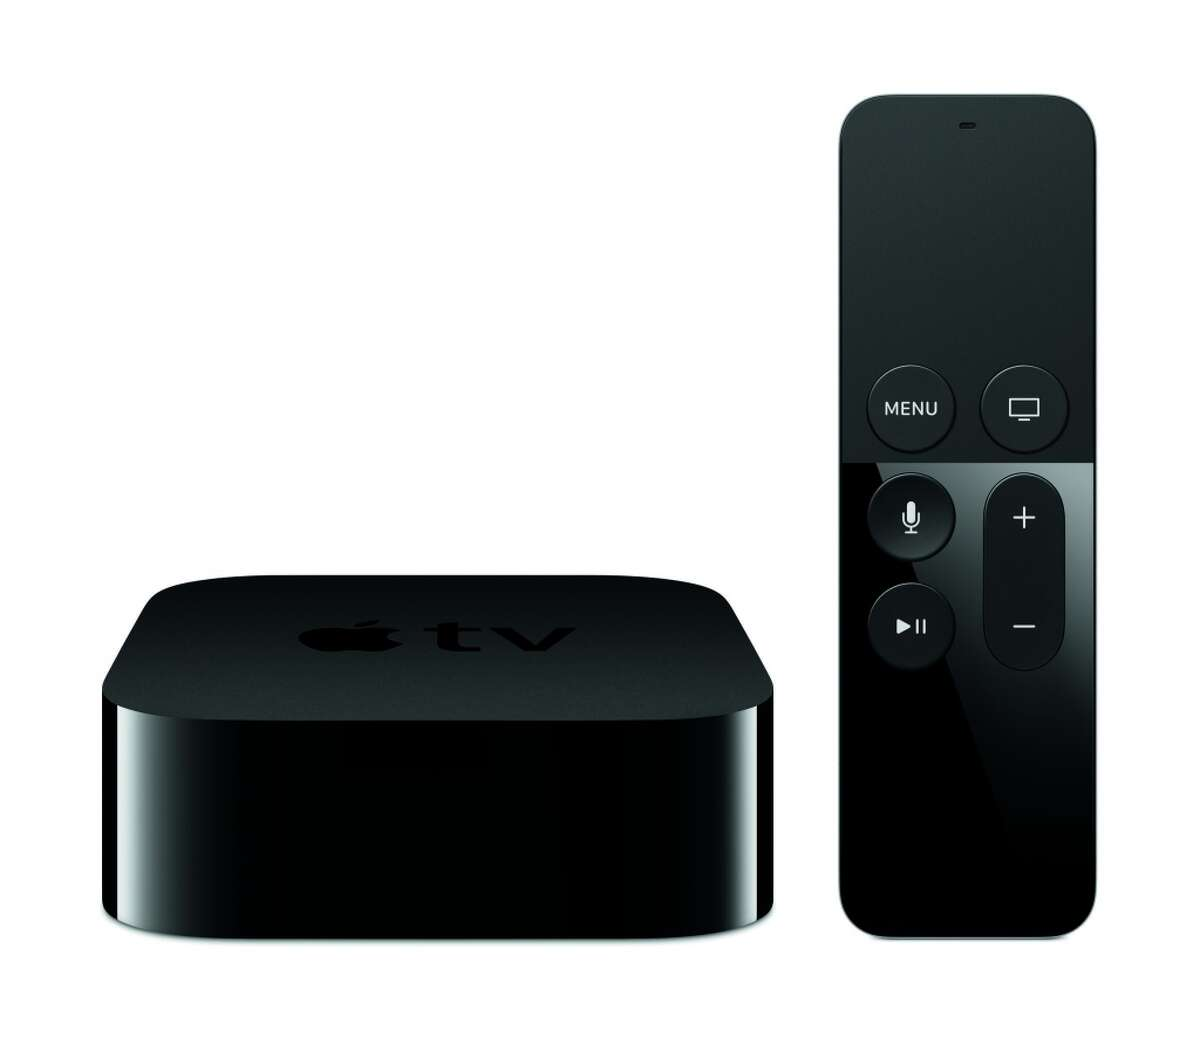 Apple TV hardware is expected to play a key role in Apple's rumored streaming service. An announcement about the service is expected March 25.